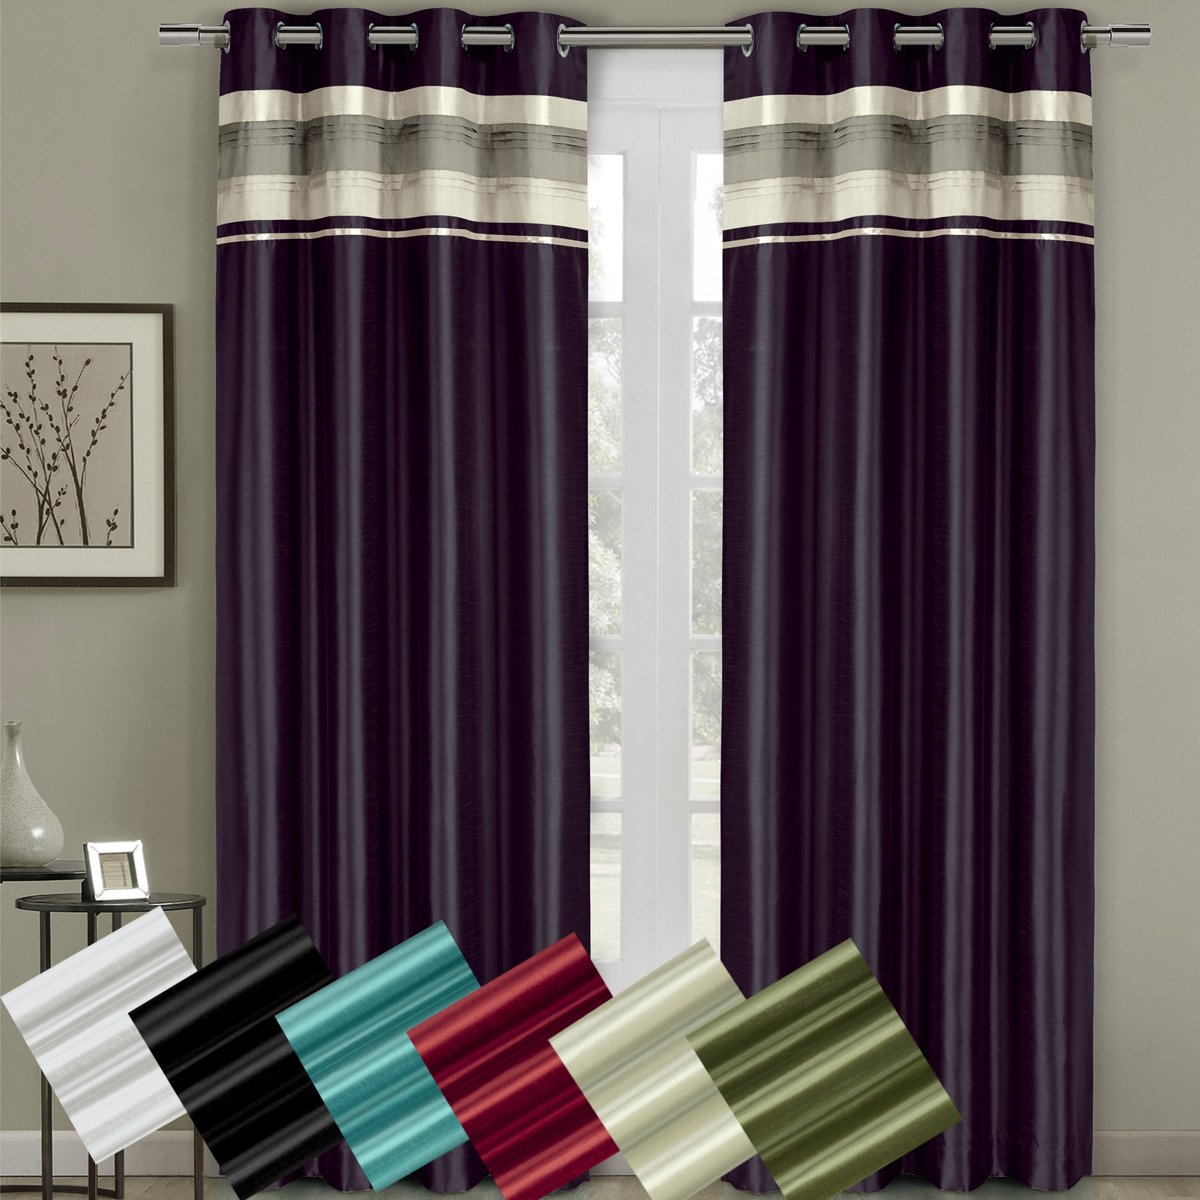 Milan Sage Top Grommets Blackout Multiple layers Fabric, Window Curtain Panels, 54x84 inches Single Panel, by Royal Hotel by Royal Hotel (Image #1)